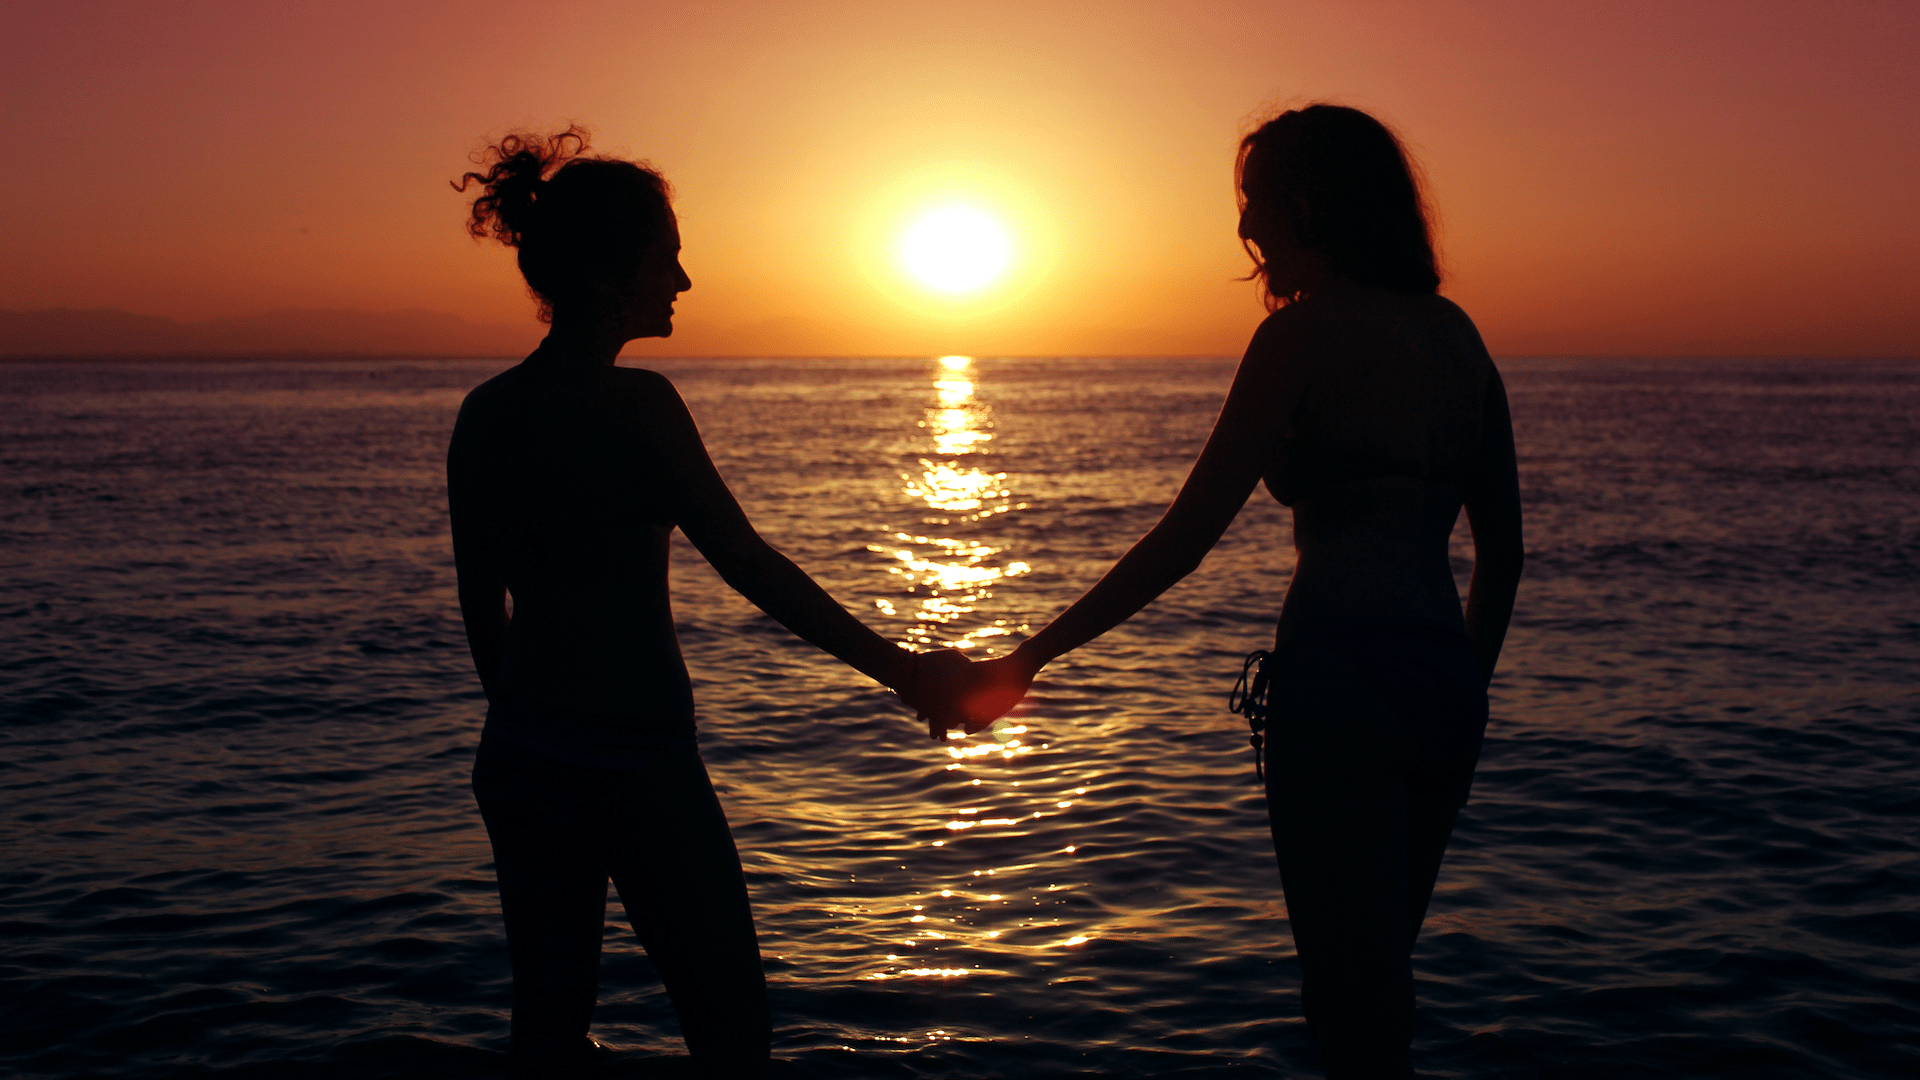 Gay Wedding Abroad - 2 Women in a Tropical Paradise